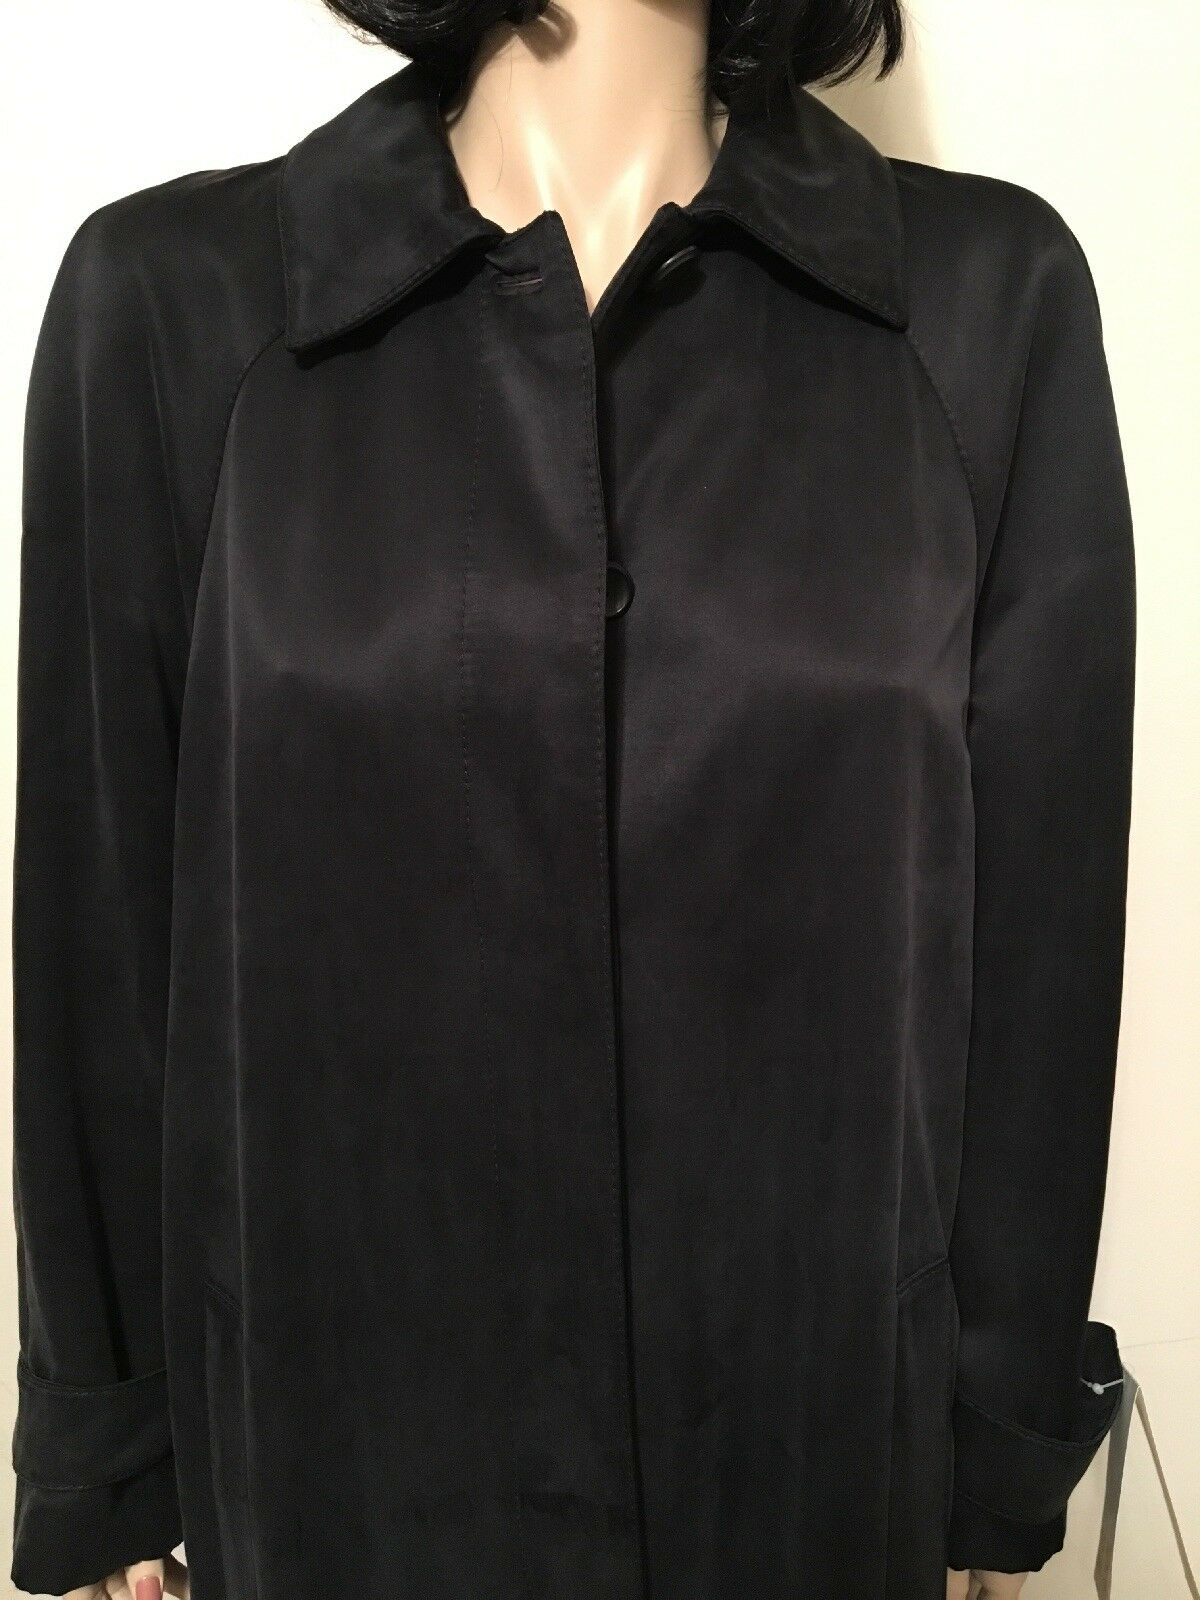 Retail    3,250 Hettabretz 100% Silk Coat Fully Lined Size 42 Made In   NWT d6c277